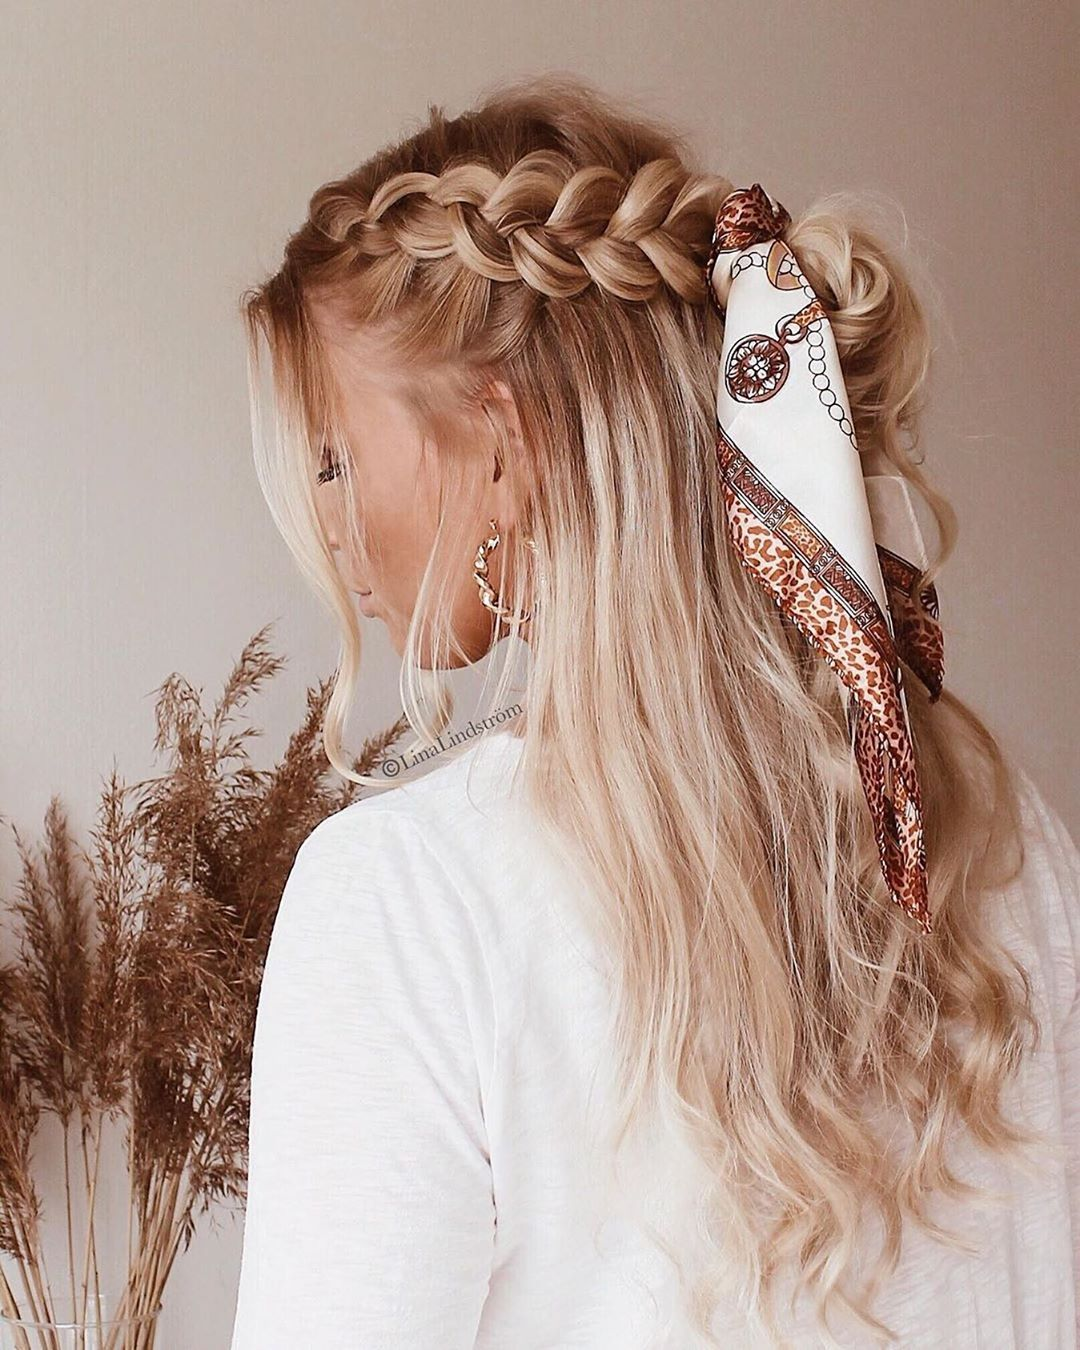 Spring 2020 Trendy Hairstyles On We Heart It